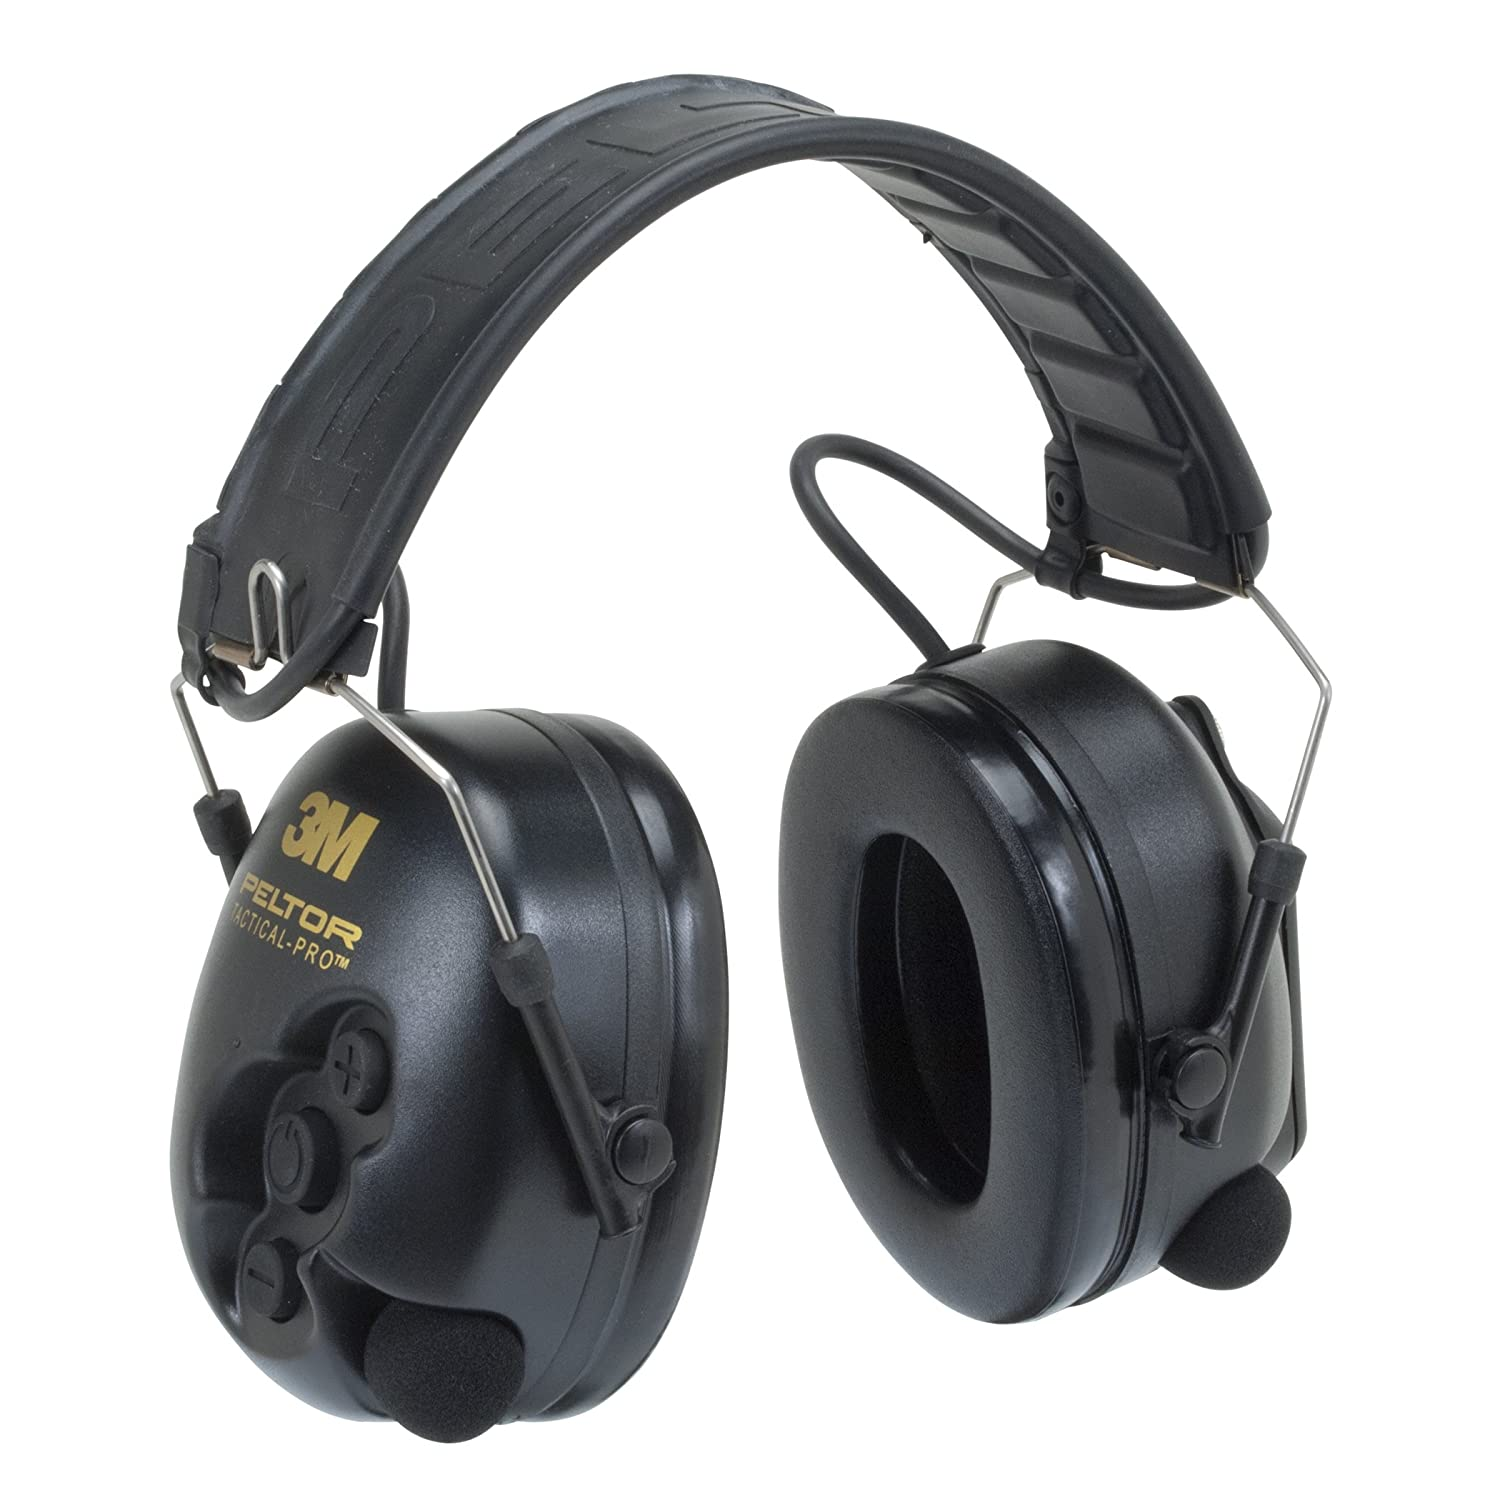 3M Peltor TacticalPro Communications Headset MT15H7F SV